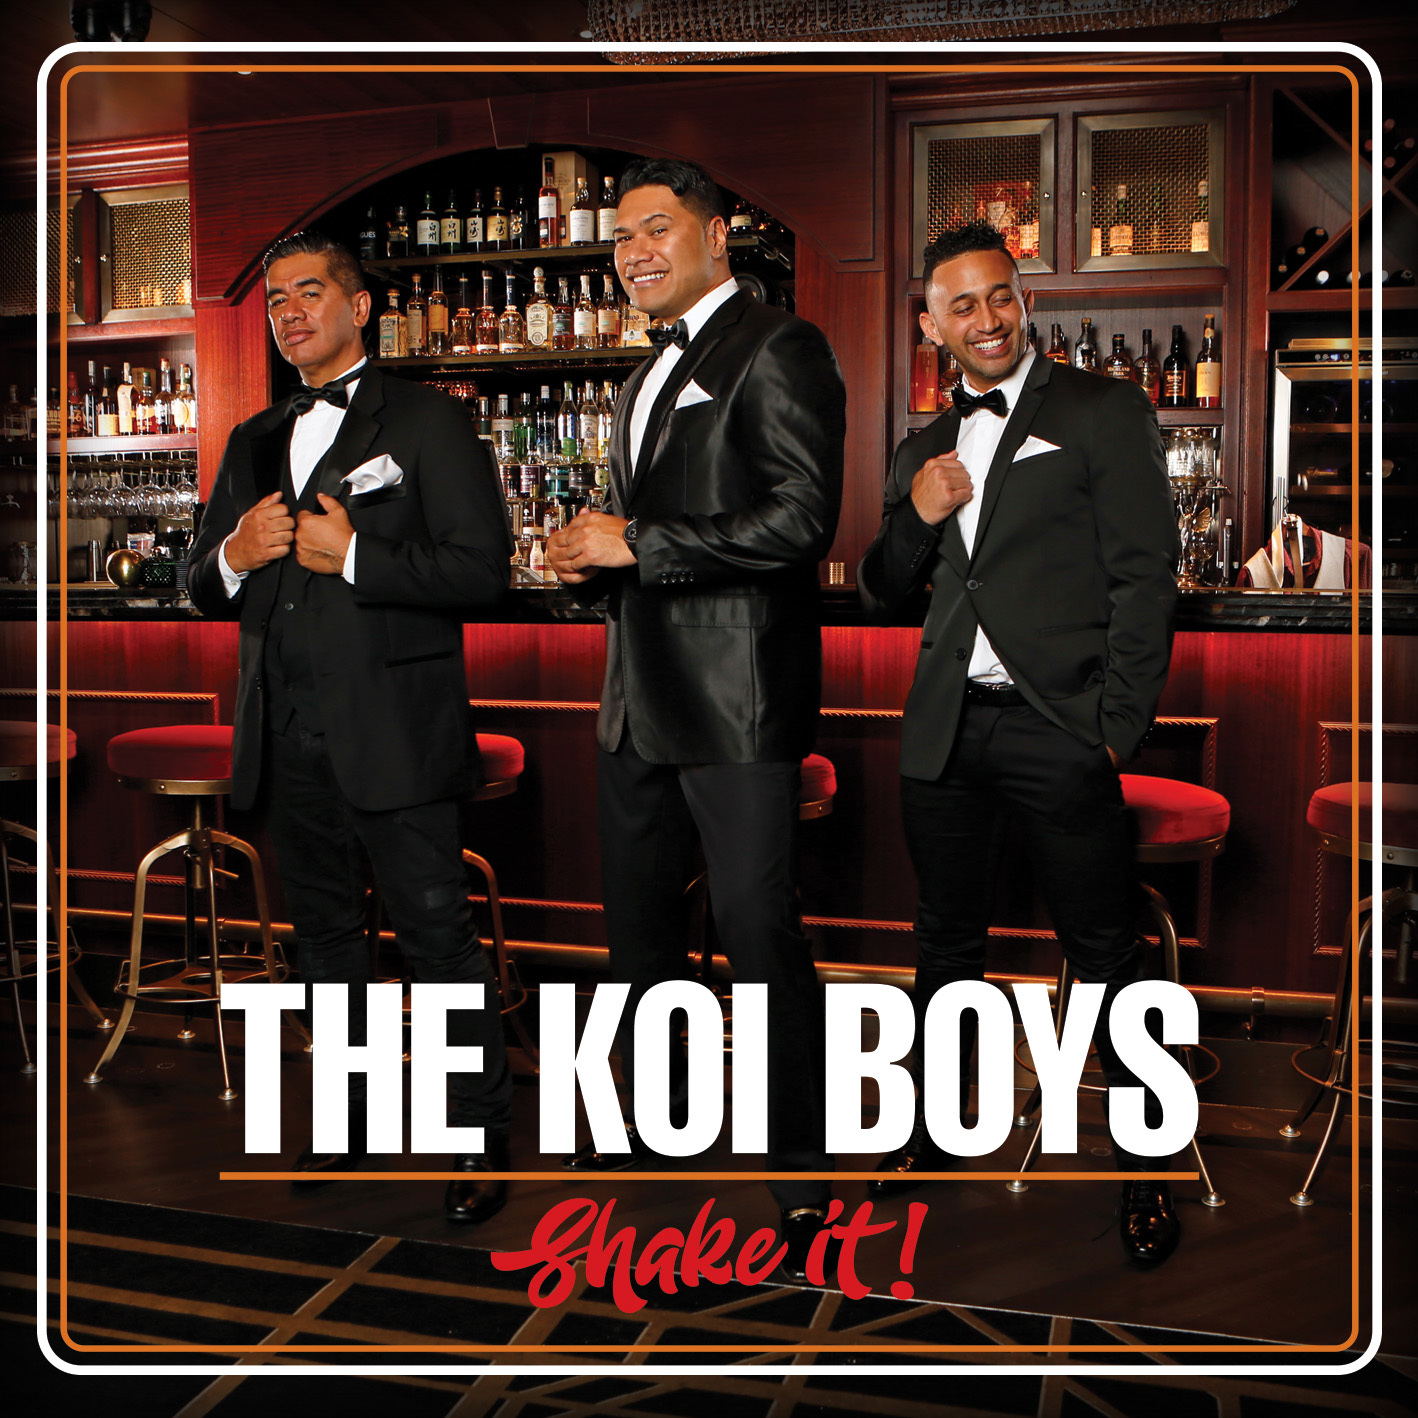 Shake It by The Koi Boys image